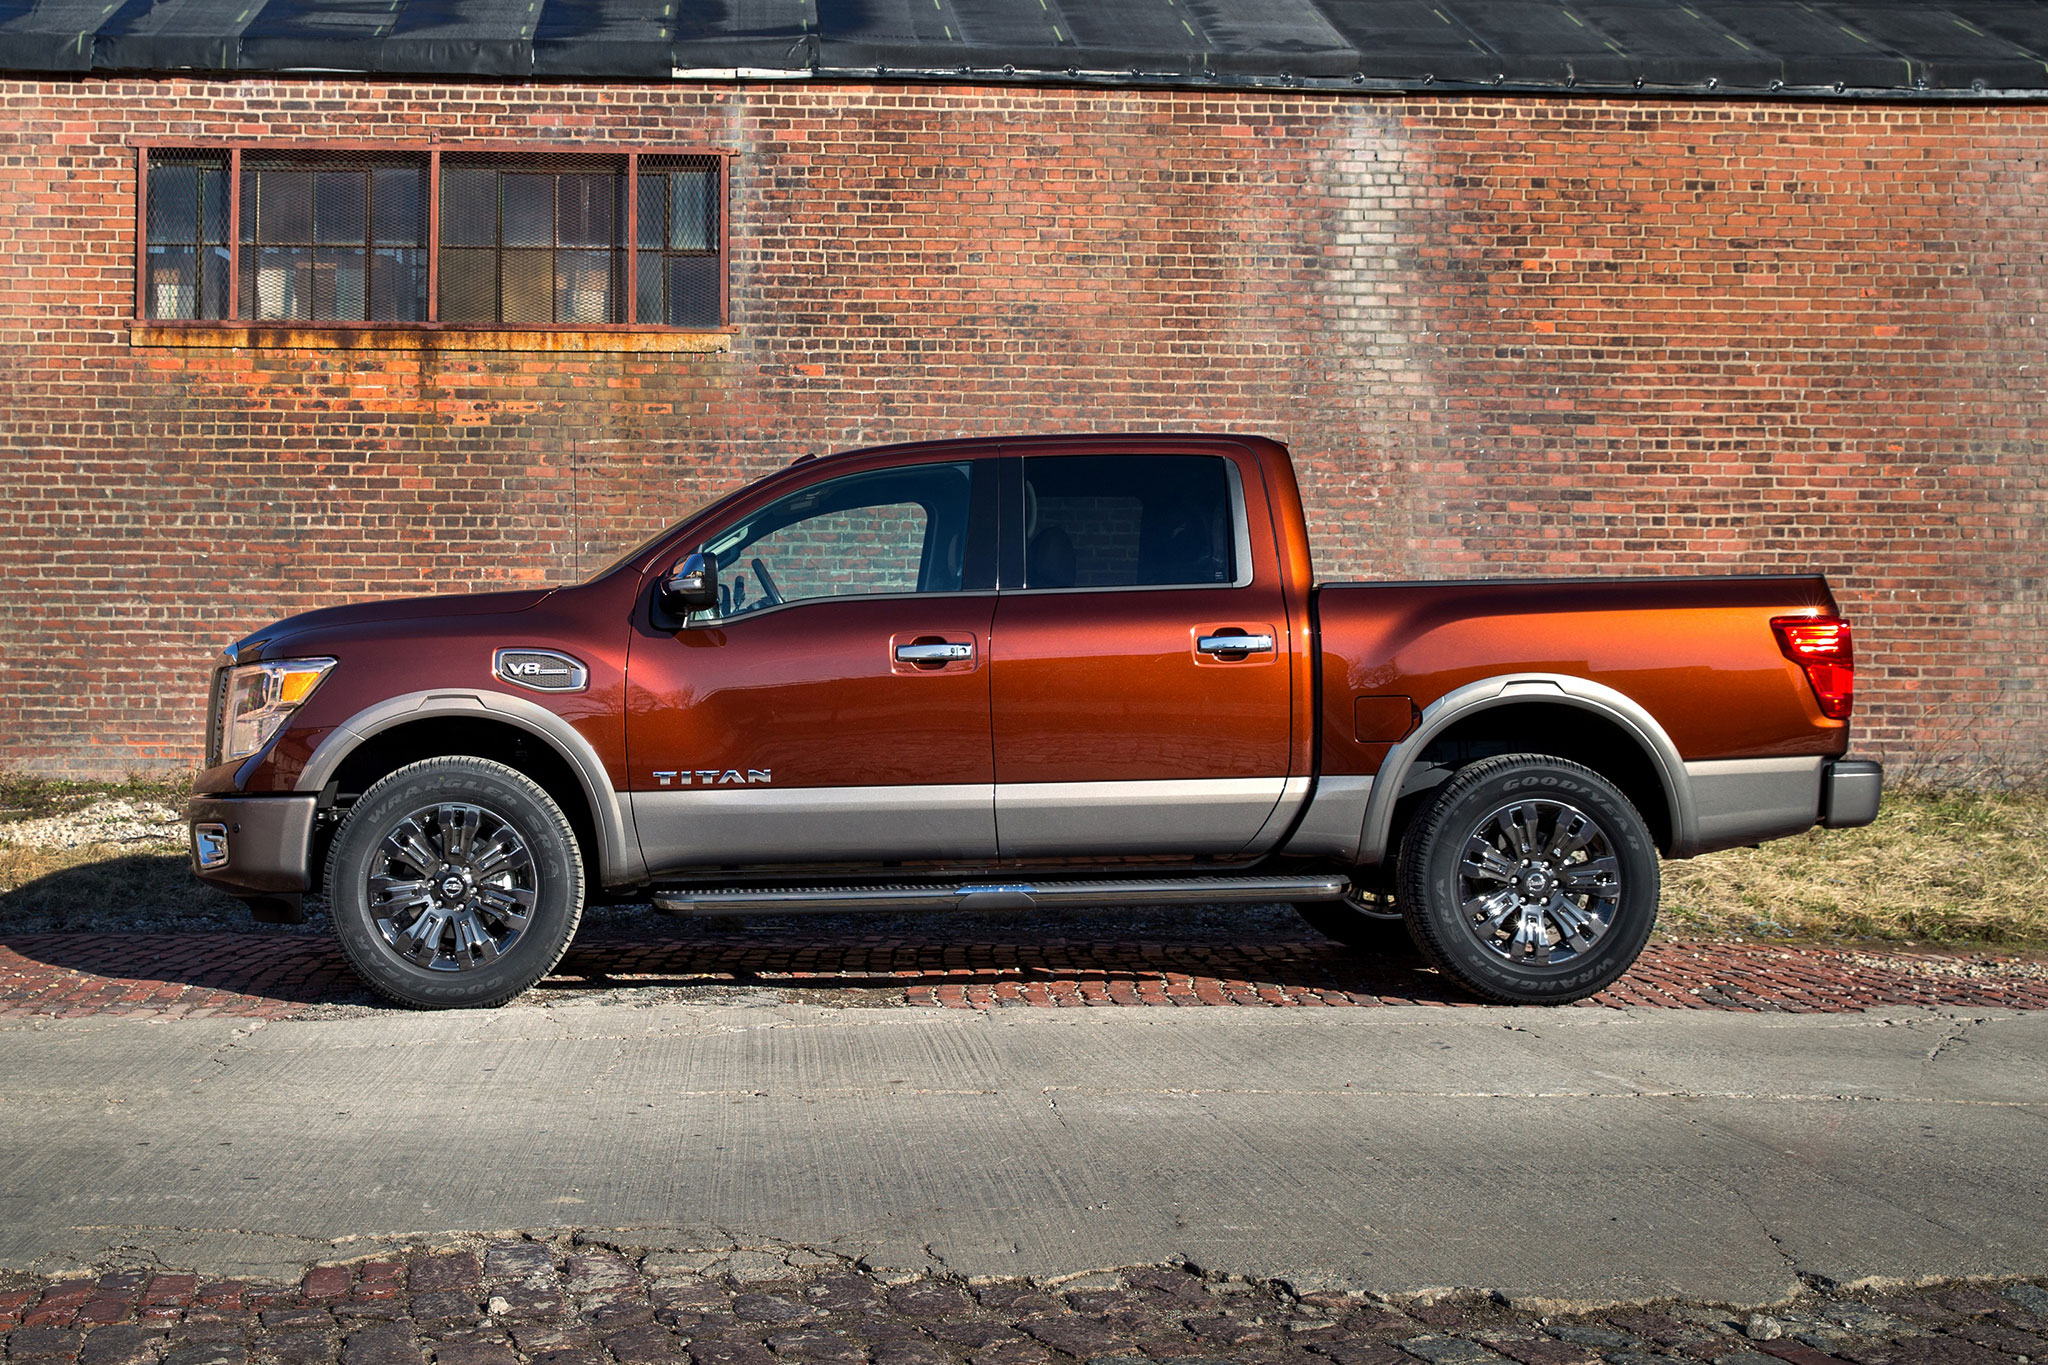 2017 nissan titan v-8 crew cab first drive road test and review